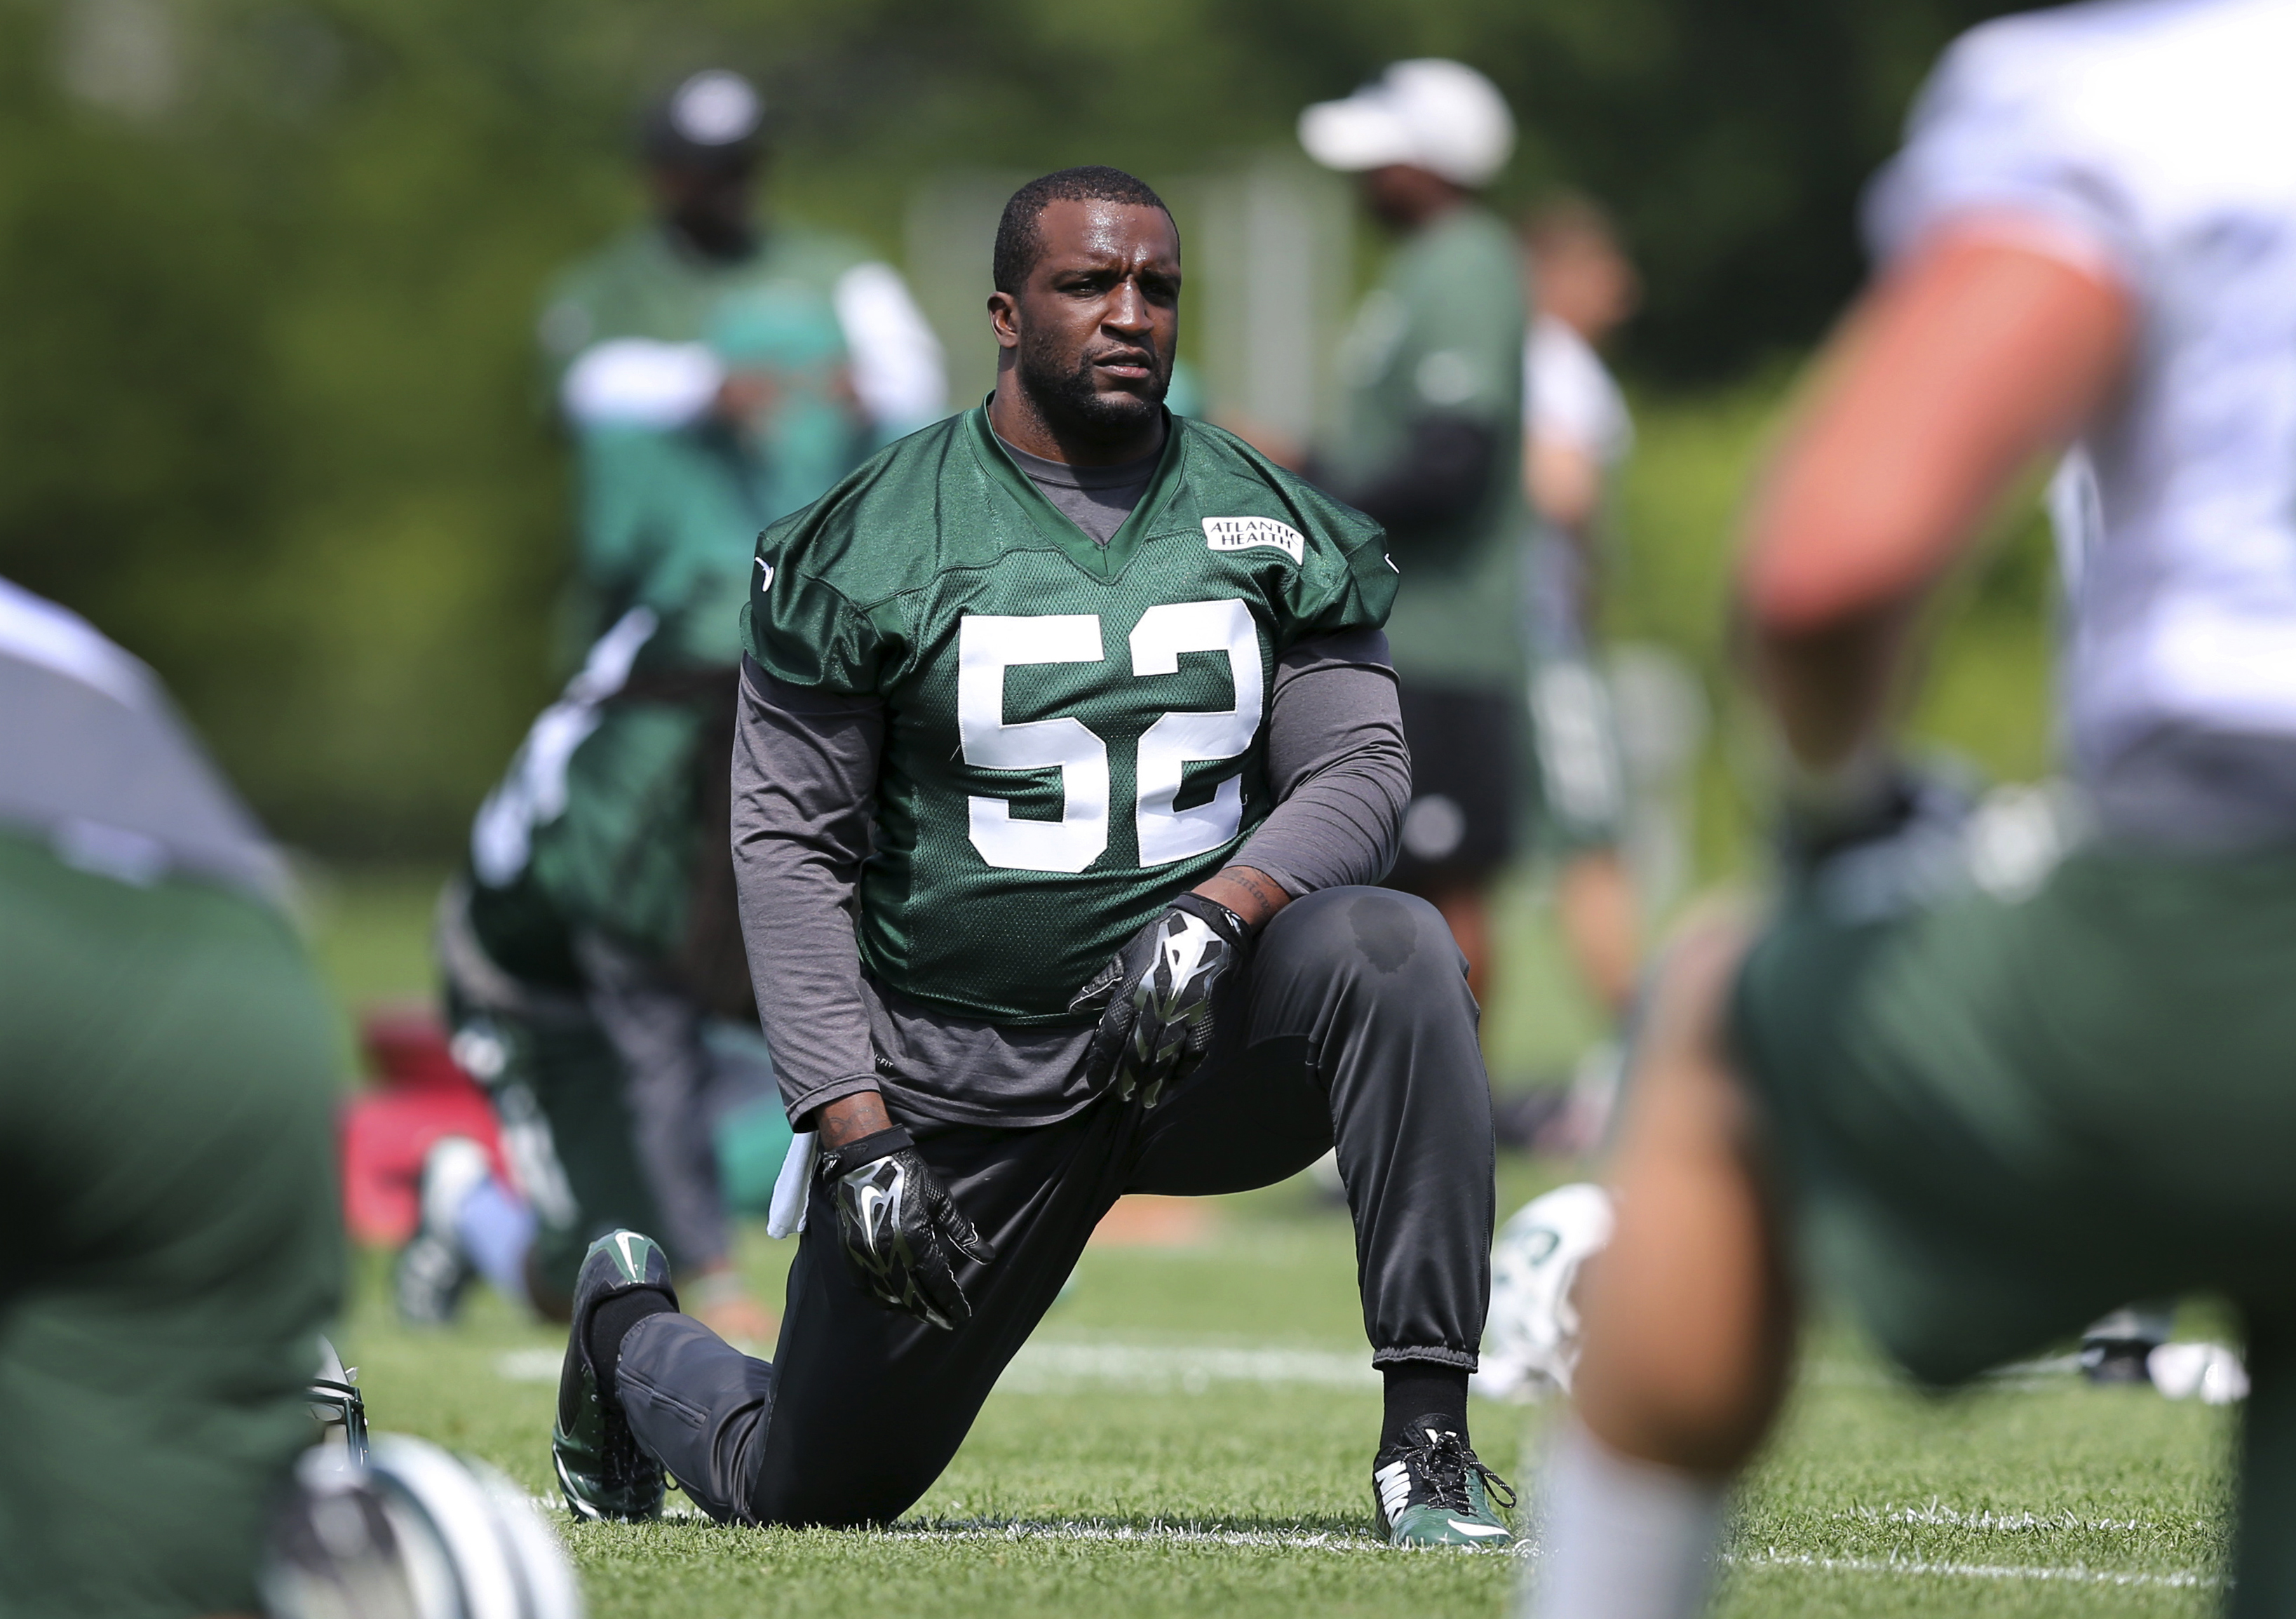 FILE - In this Wednesday, June 1, 2016, file photo, New York Jets linebacker David Harris (52) stretches during NFL football practice in Florham Park, N.J. Harris was listed Saturday, Oct. 15, as doubtful to play against the Arizona Cardinals on Monday ni